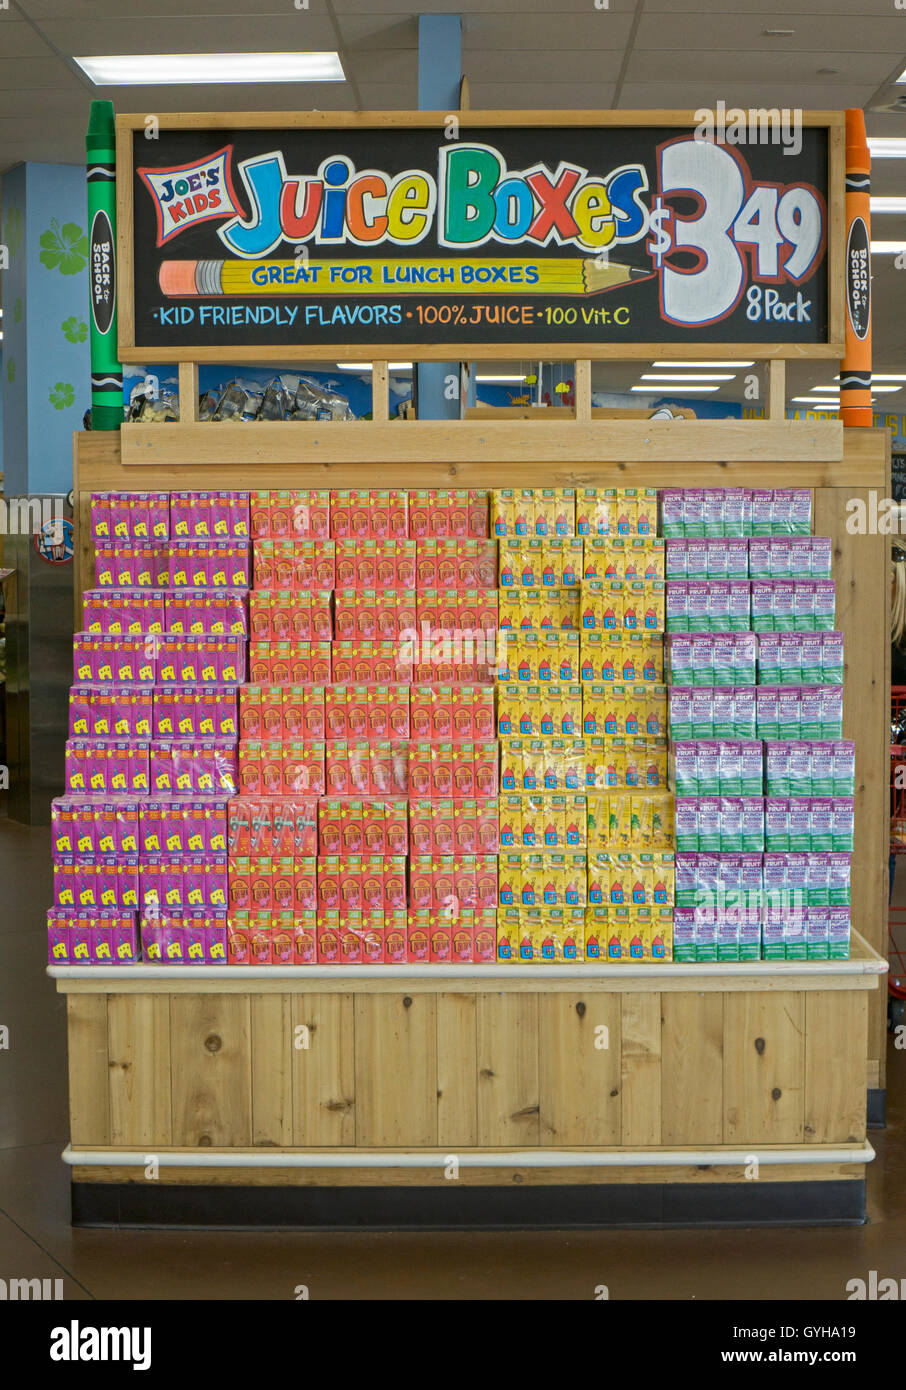 Children's juice boxes for sale at TRADER JOE'S on Old Country Road in Garden City Long Island, New York. - Stock Image